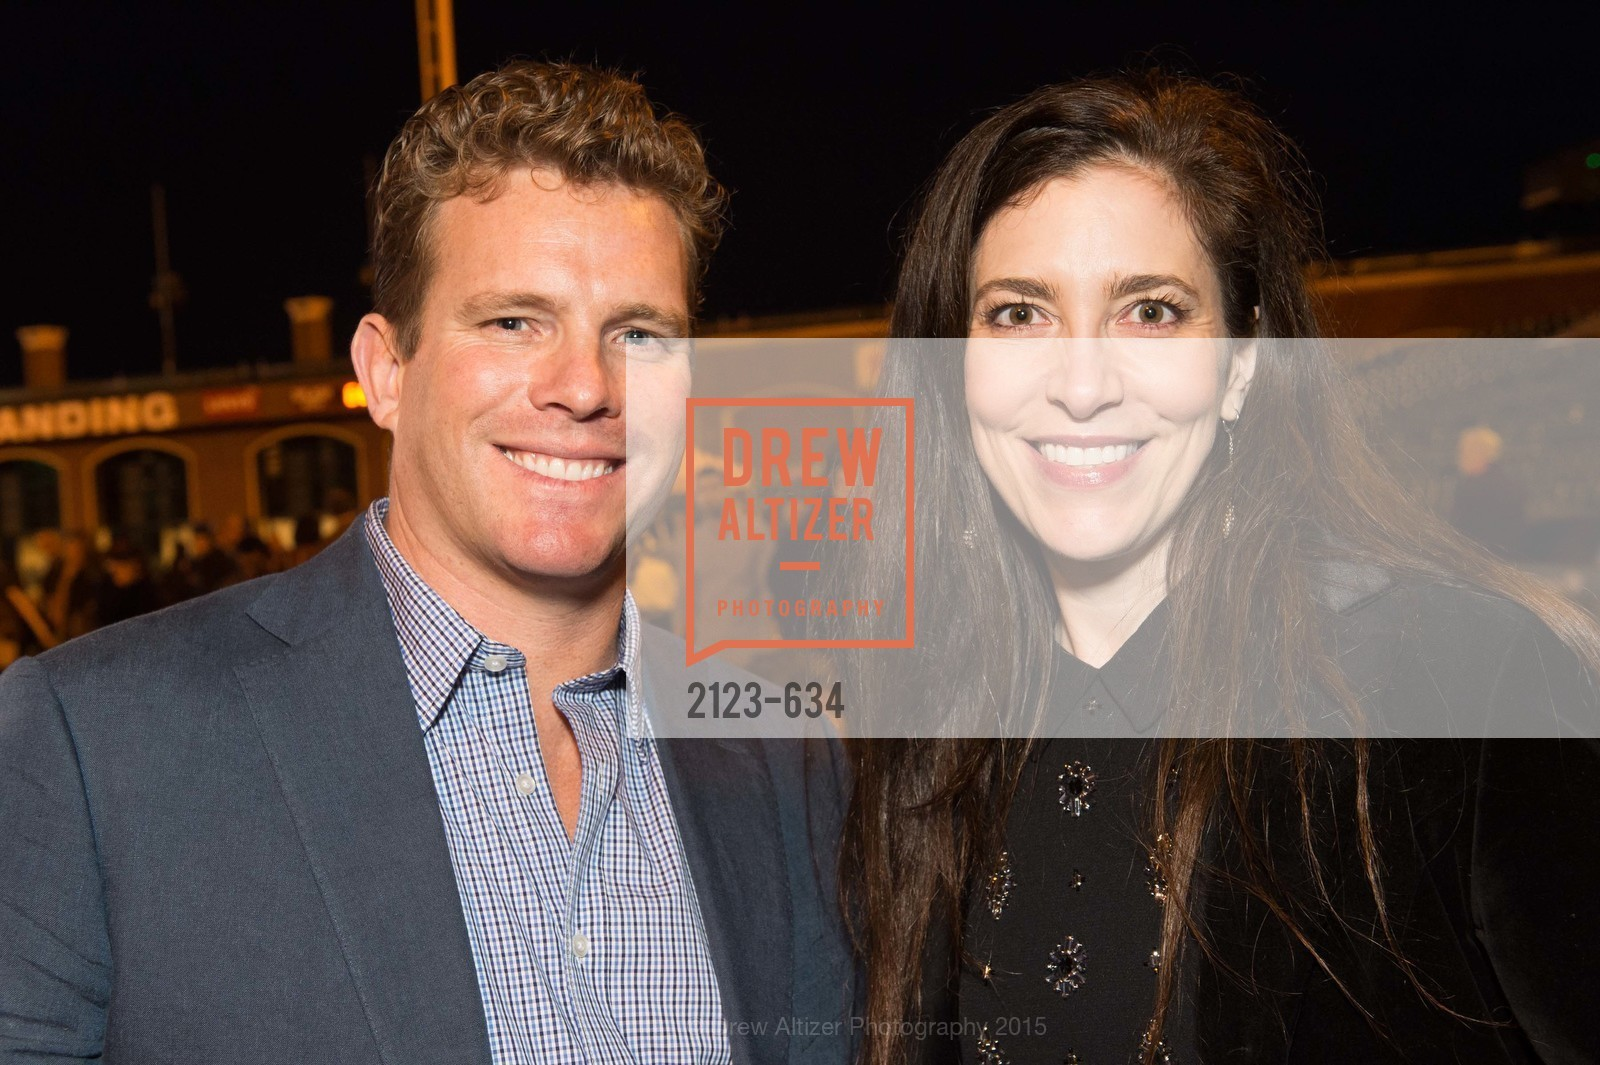 Ben Stephens, Letitia Kim, Holiday Heroes 2015, AT&T Park, December 7th, 2015,Drew Altizer, Drew Altizer Photography, full-service agency, private events, San Francisco photographer, photographer california